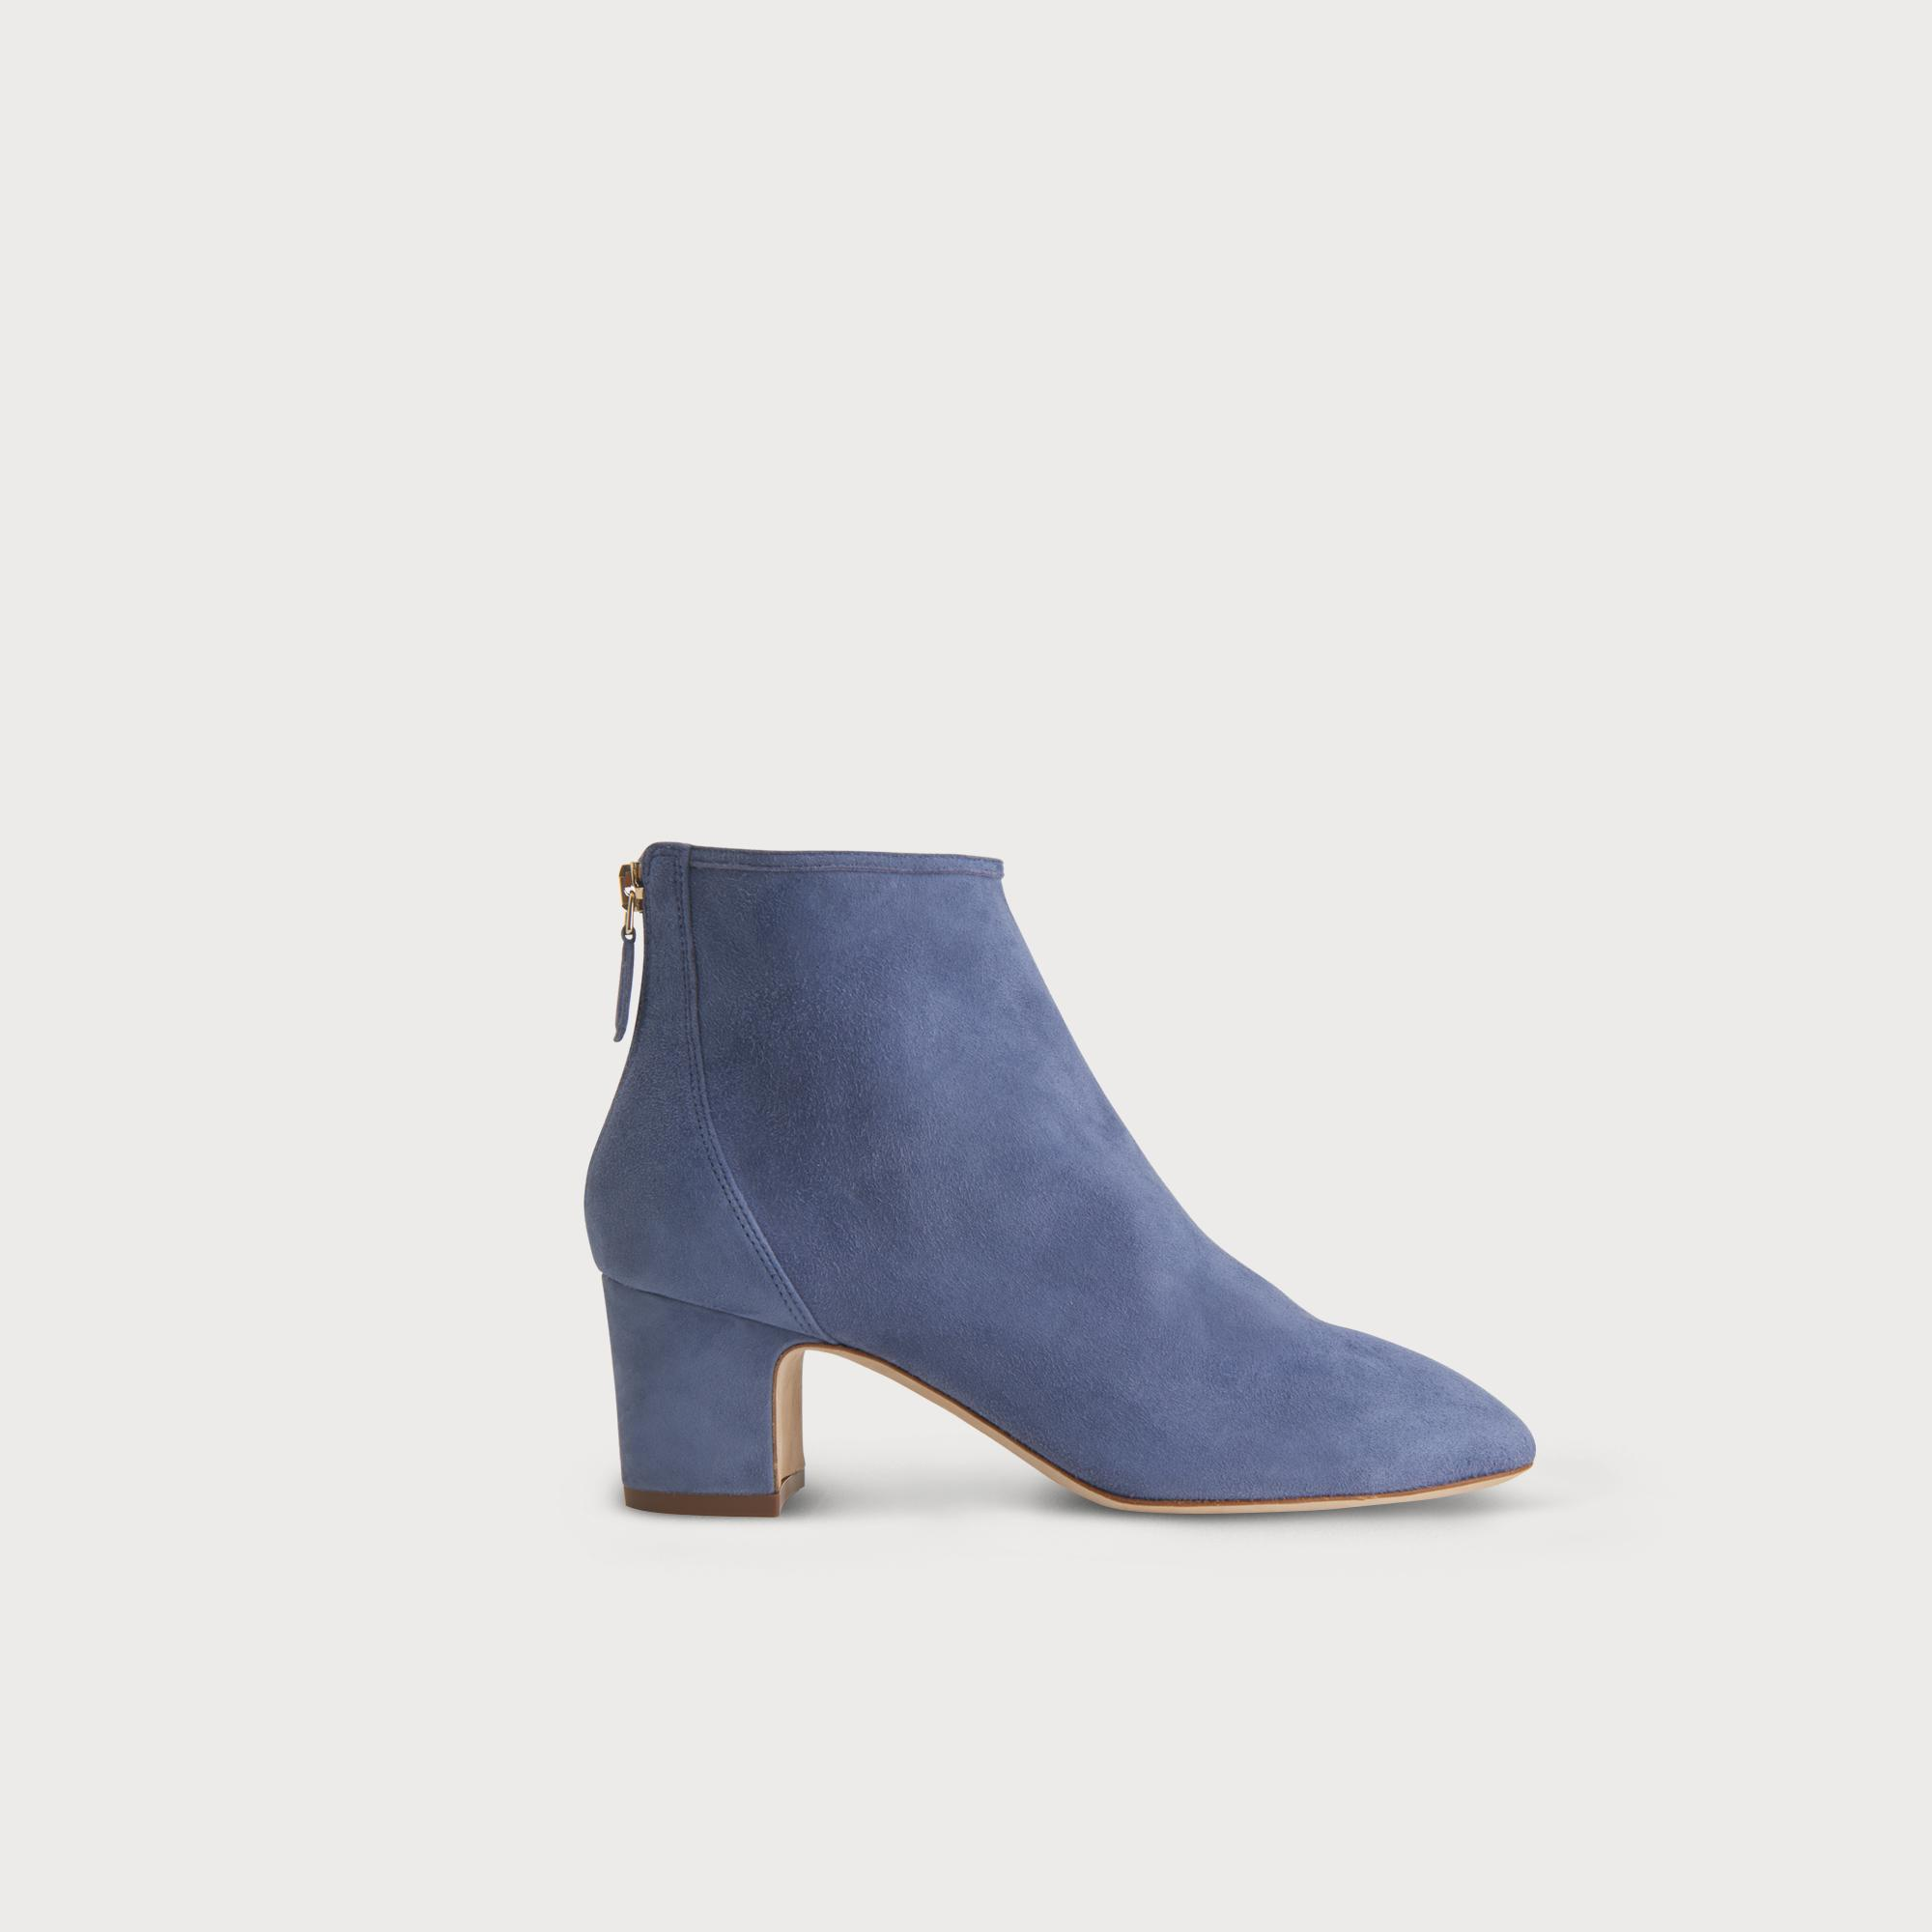 Alyss Blue Suede Ankle Boots